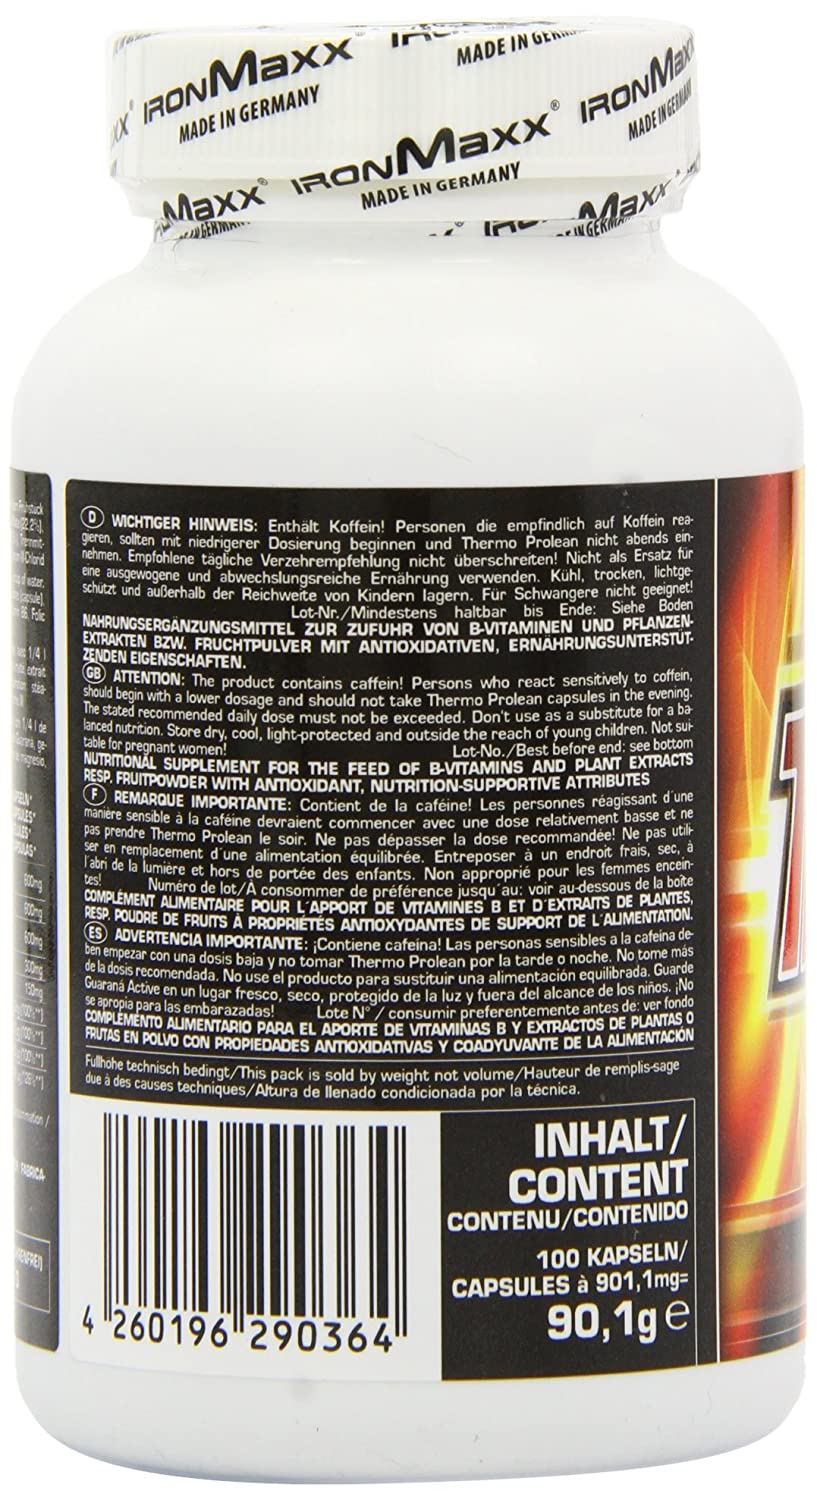 Amazon.com: Ironmaxx 860mg Thermo Prolean Capsules - Pack of 100 Capsules: Health & Personal Care